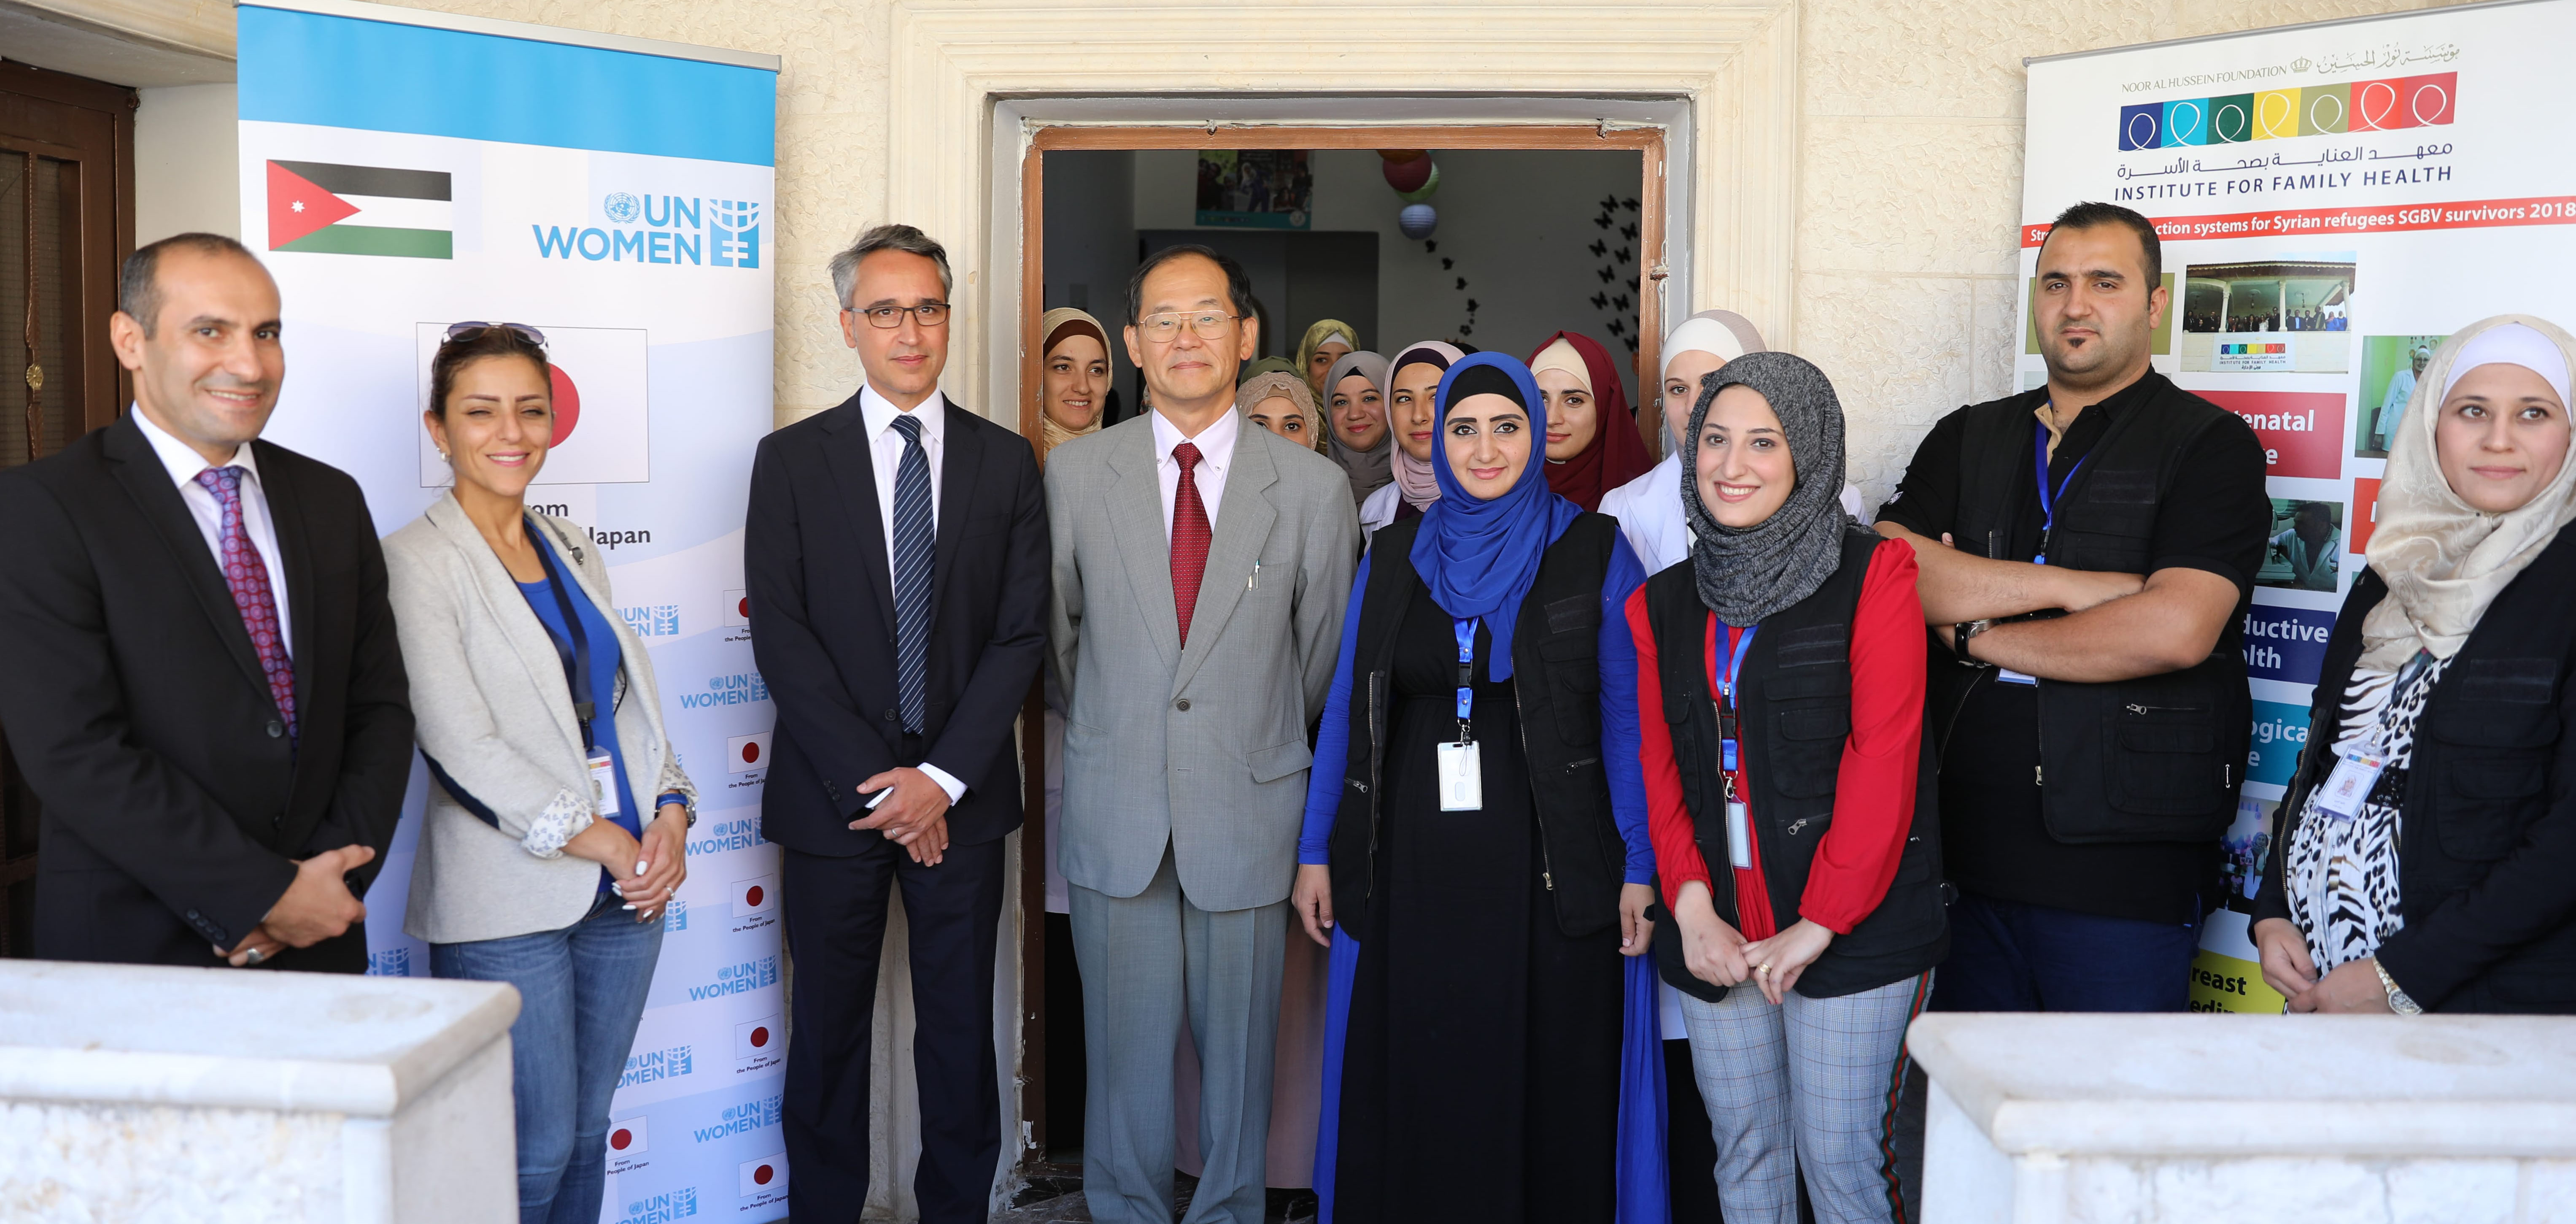 Ambassador of Japan Visits Protection Center in Aljoun operated by UN Women and the institute for Family Health